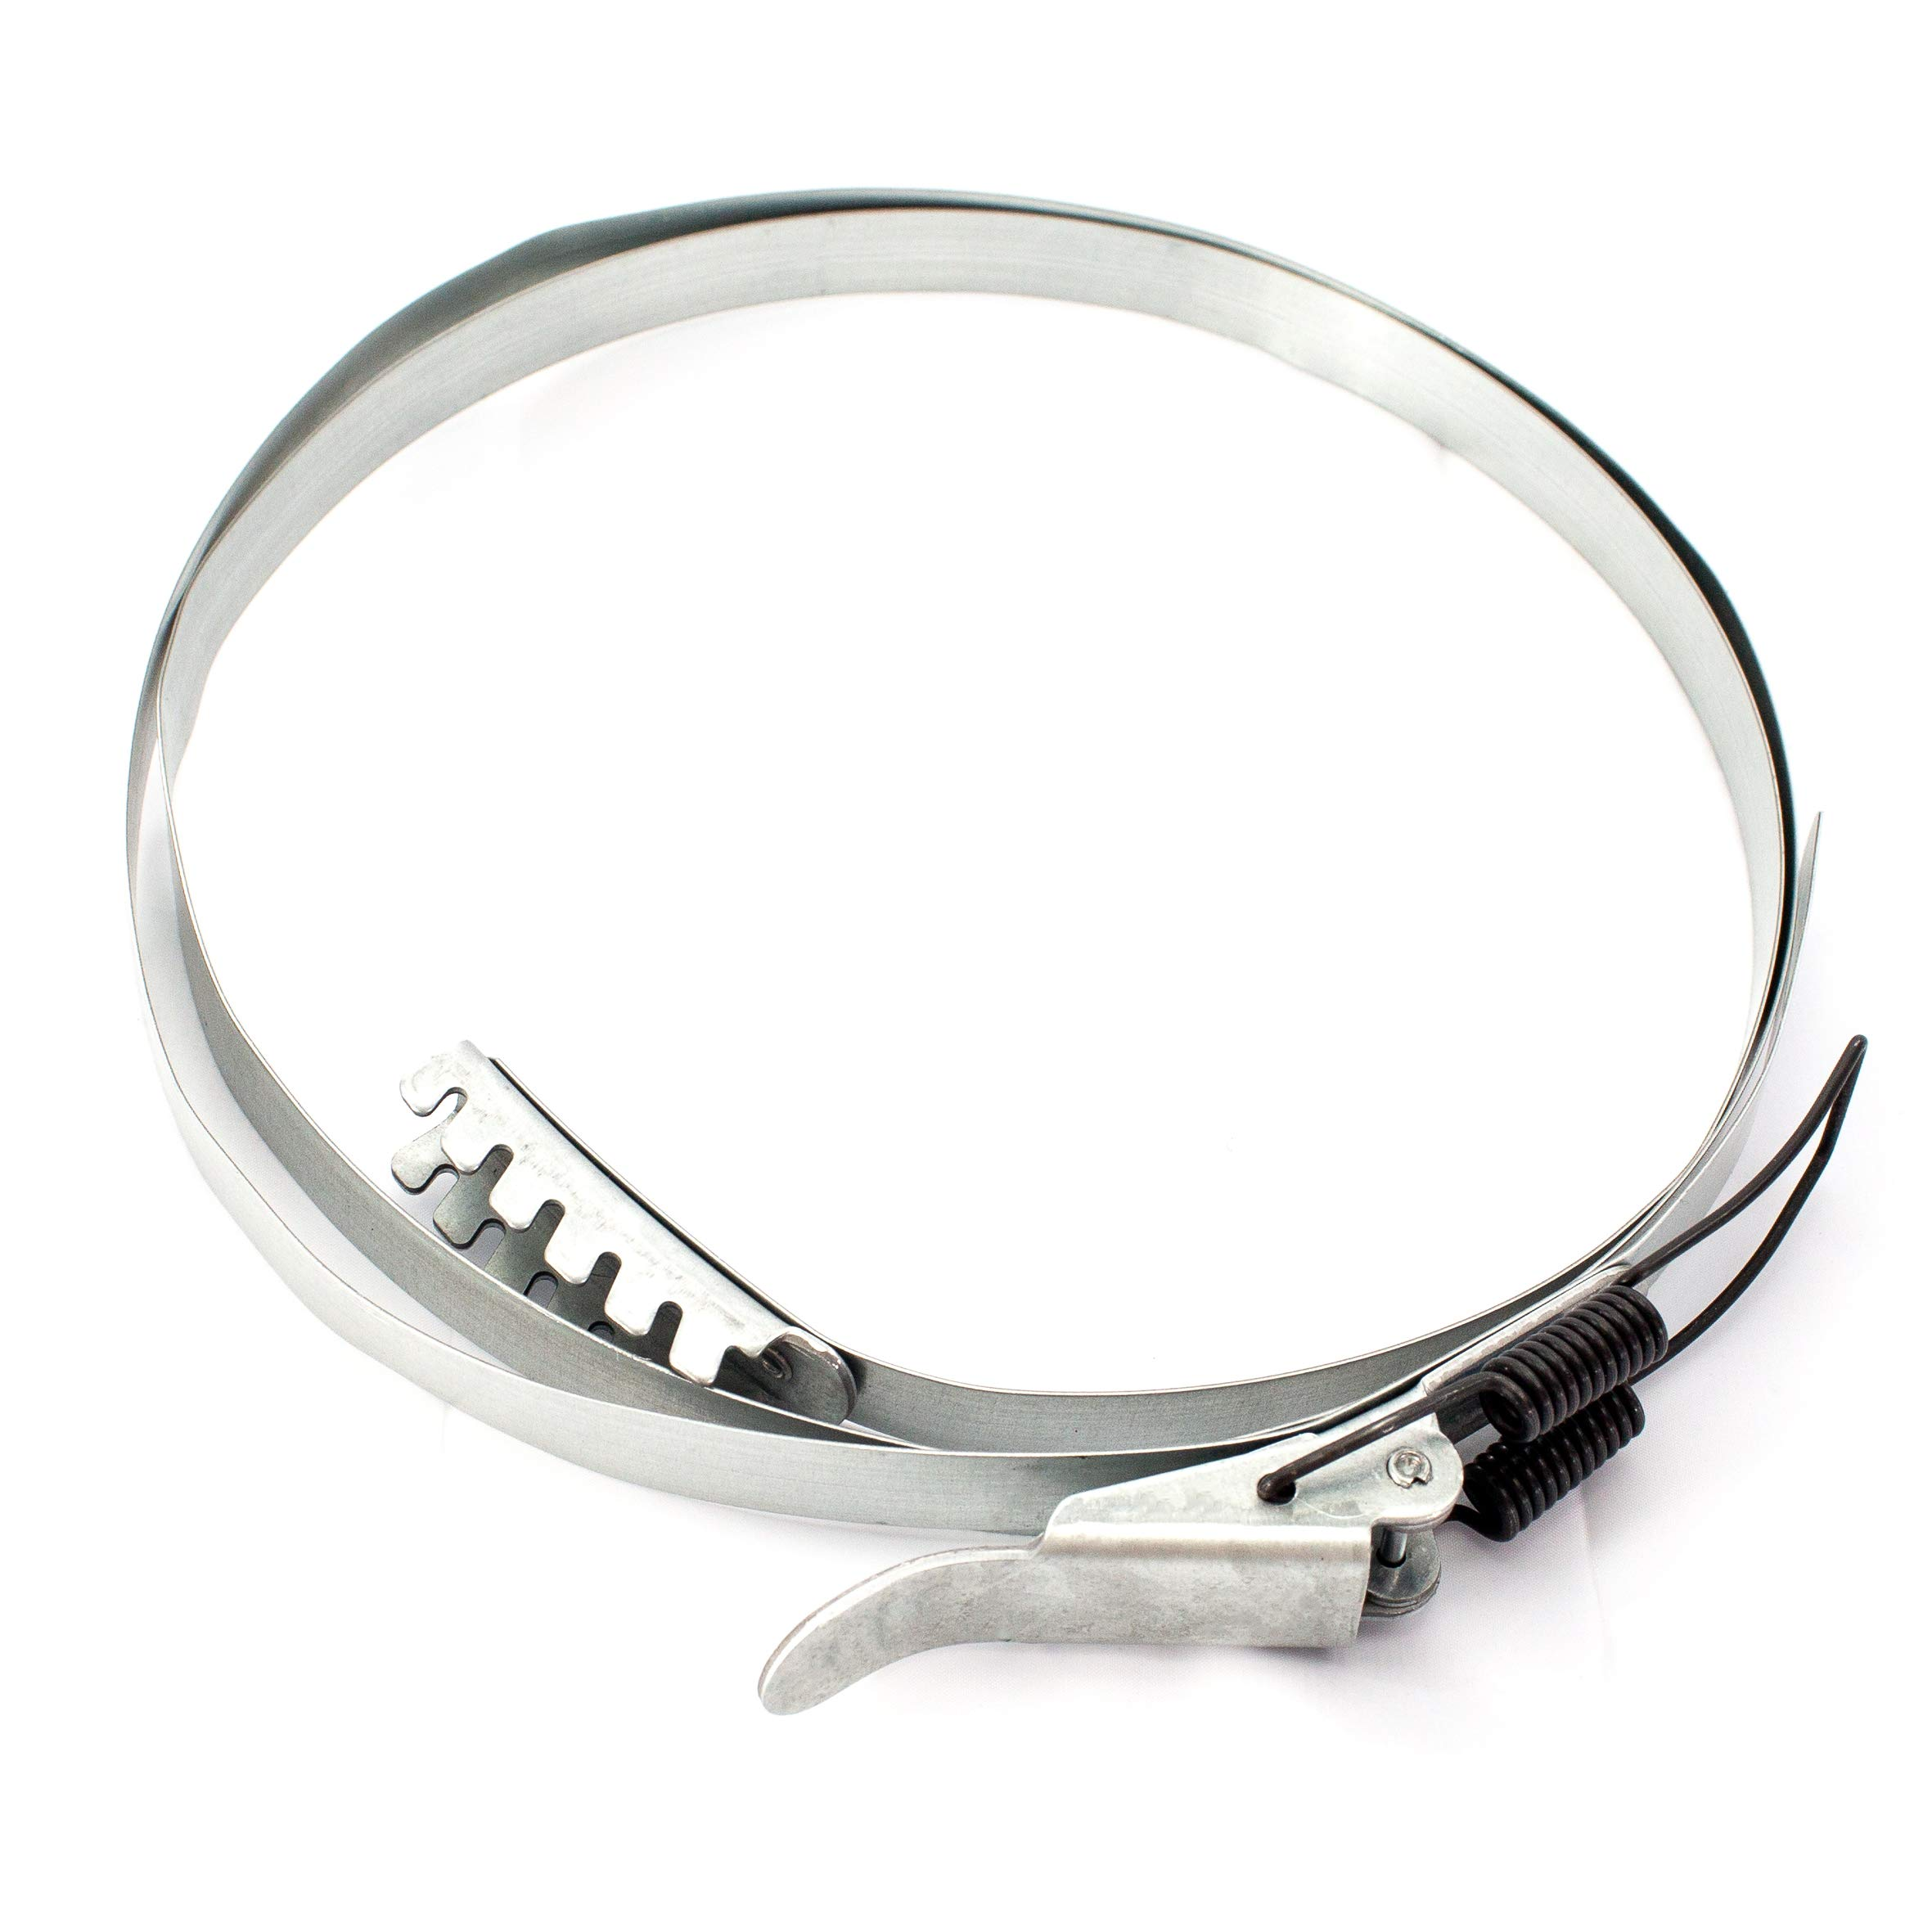 POWERTEC 71228 Band Clamp for Dust Collector, 18-5/8'' (473mm) to 19''(483mm)